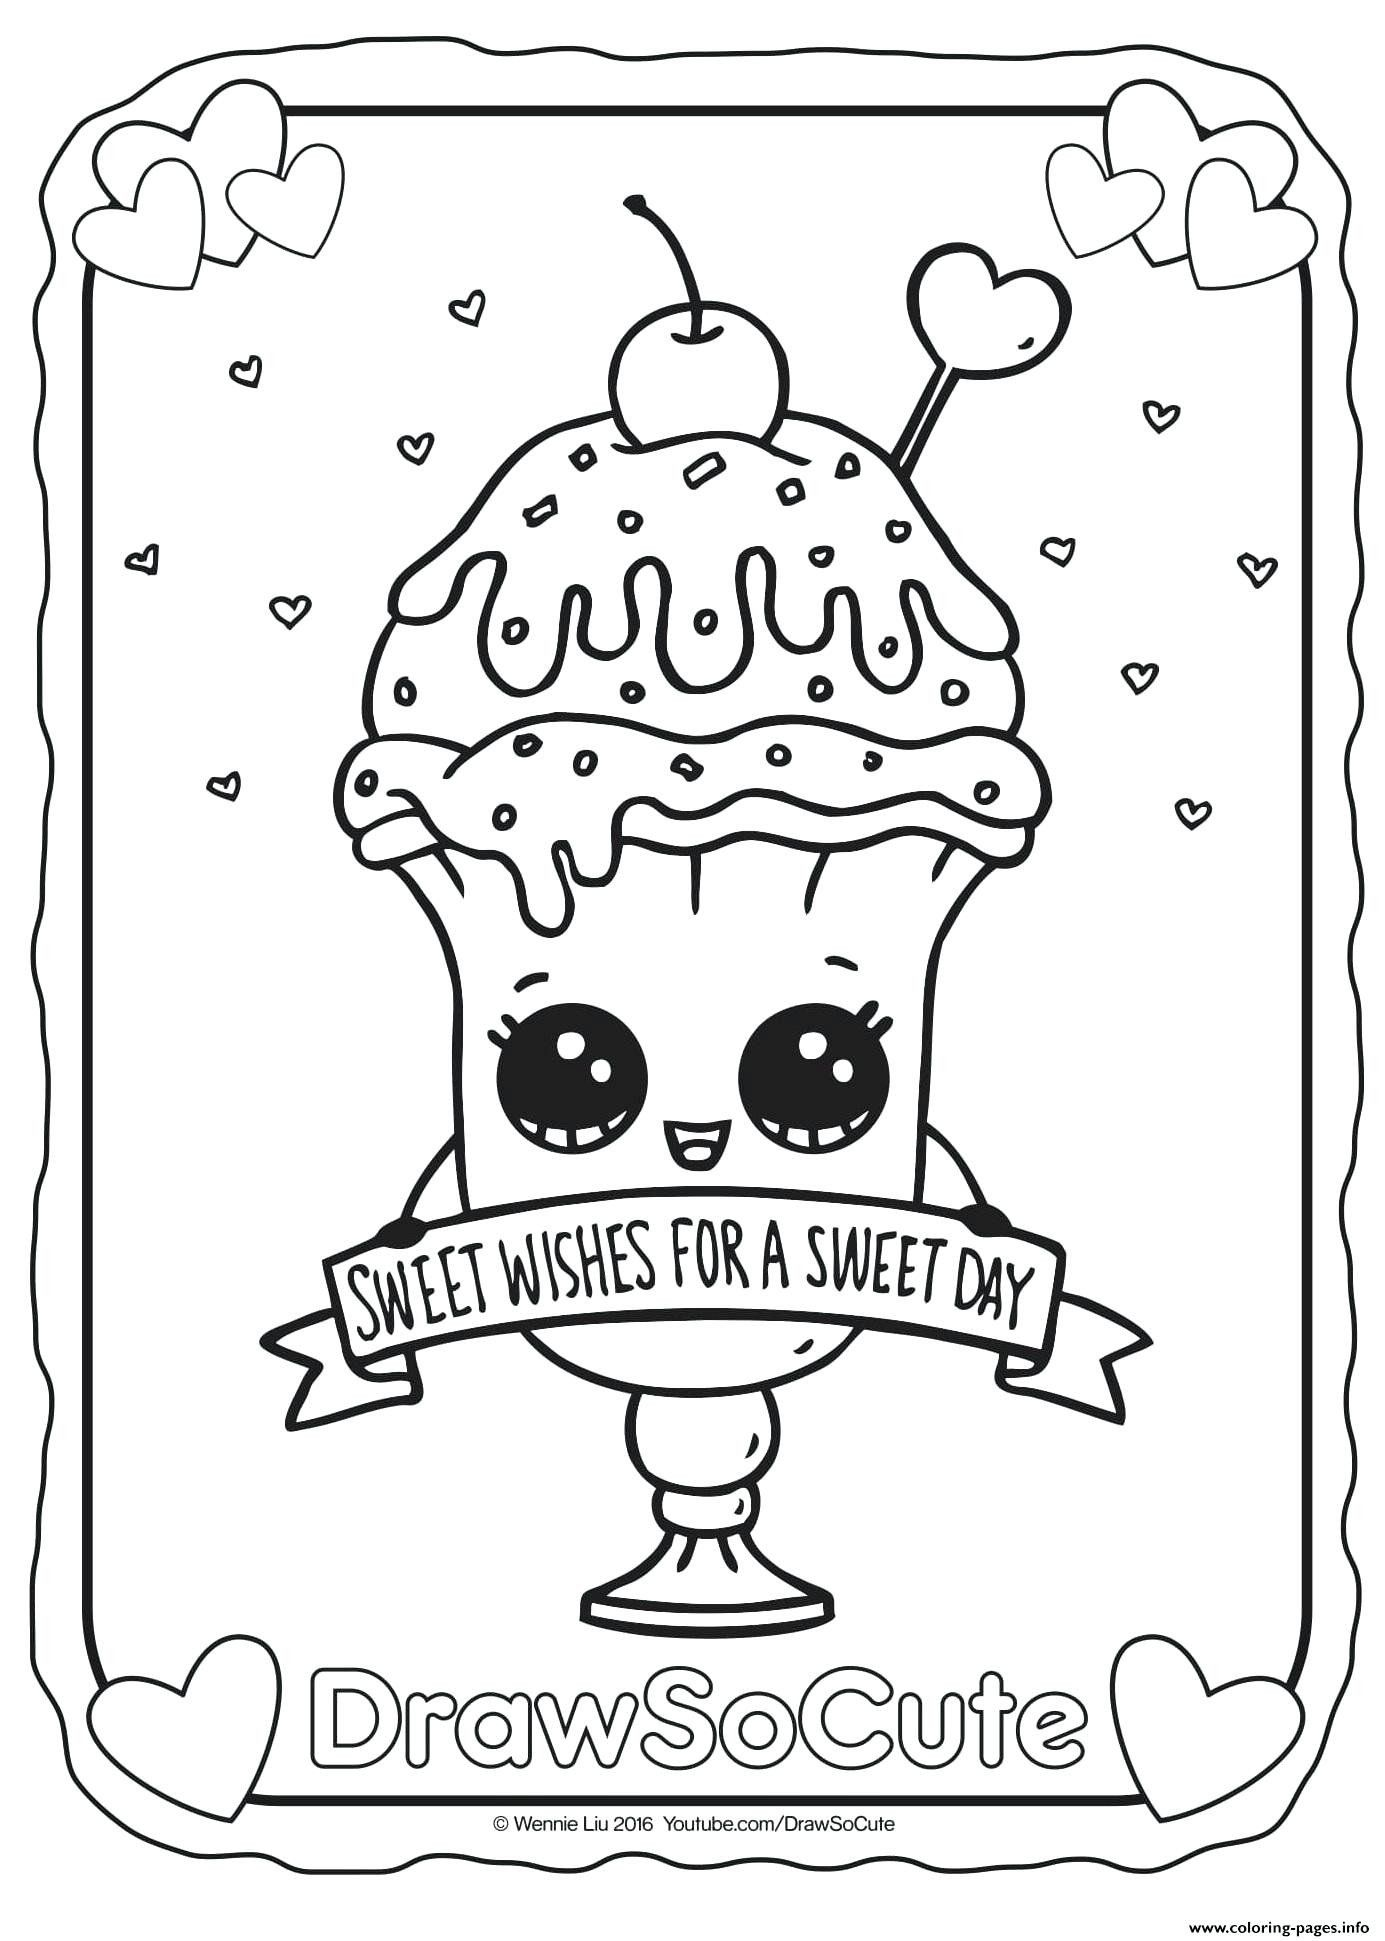 Cute Cake Coloring Pages Coloring Book Dora Coloring To Print Fruit Out Cute Coloring Pages Halloween Coloring Pages Coloring Pages Inspirational